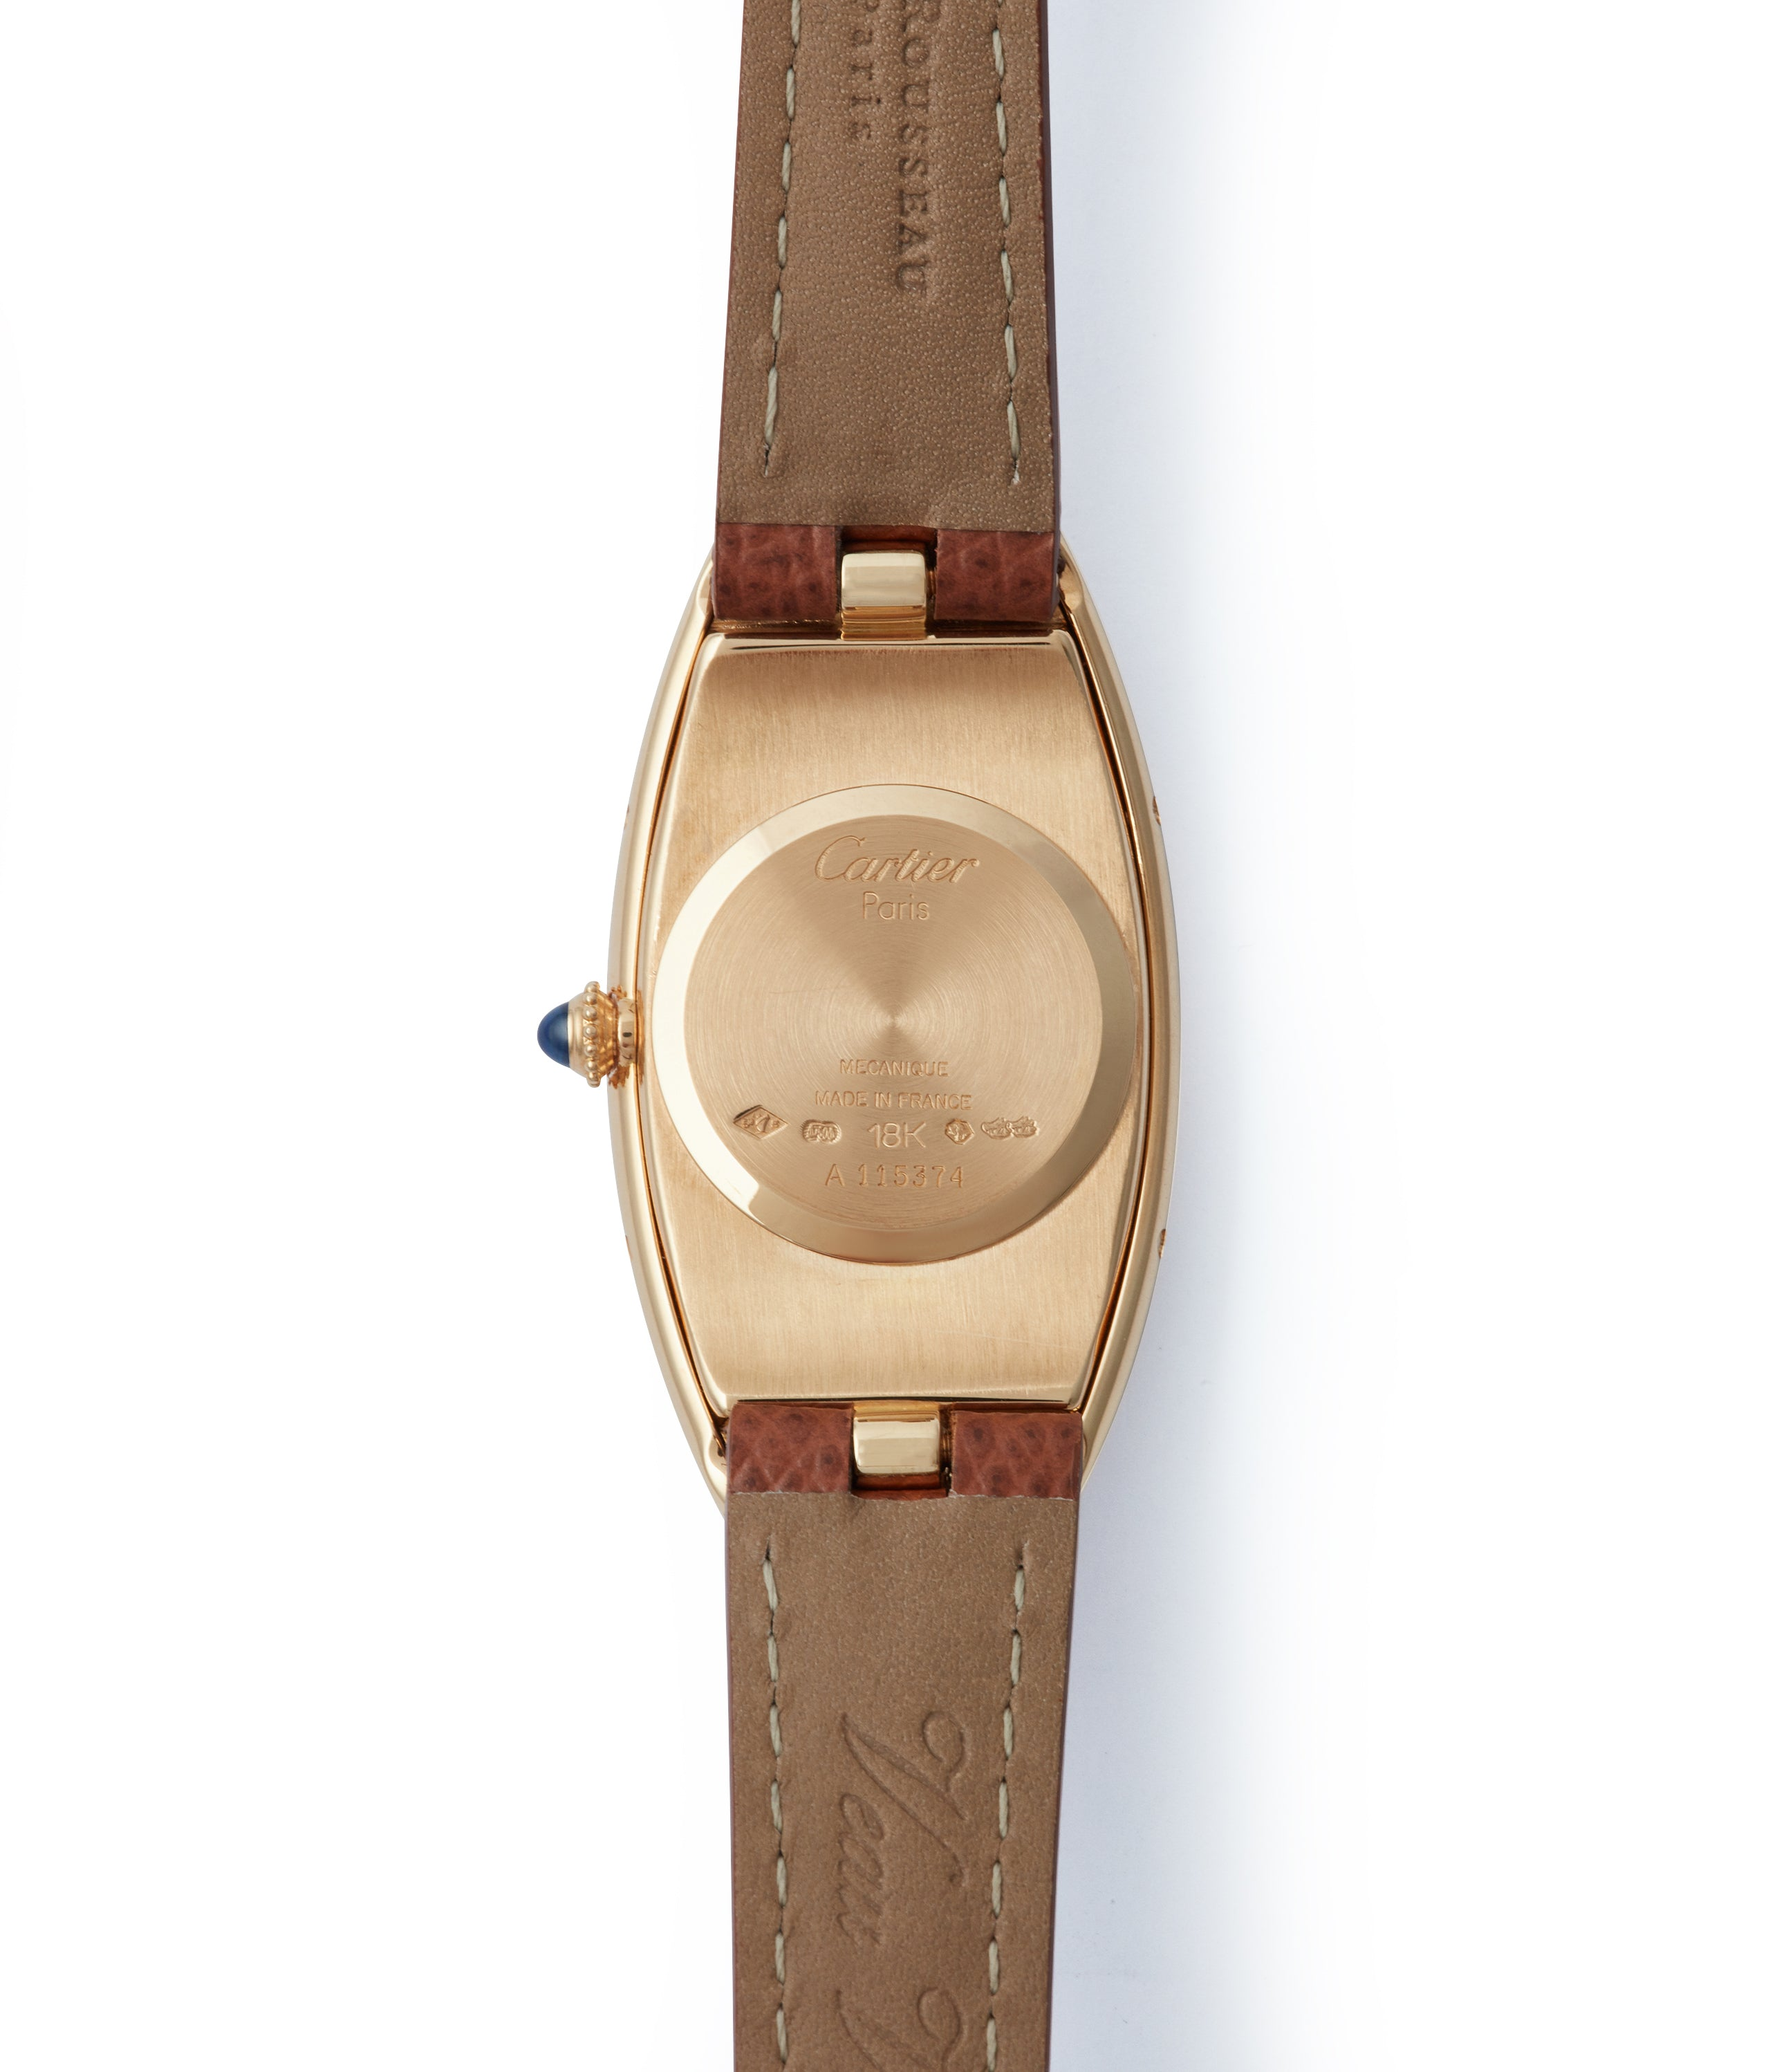 Calibre 078 Cartier Baignoire Allongée vintage pink gold time-only dress watch for sale online A Collected Man London British specialist of rare watches